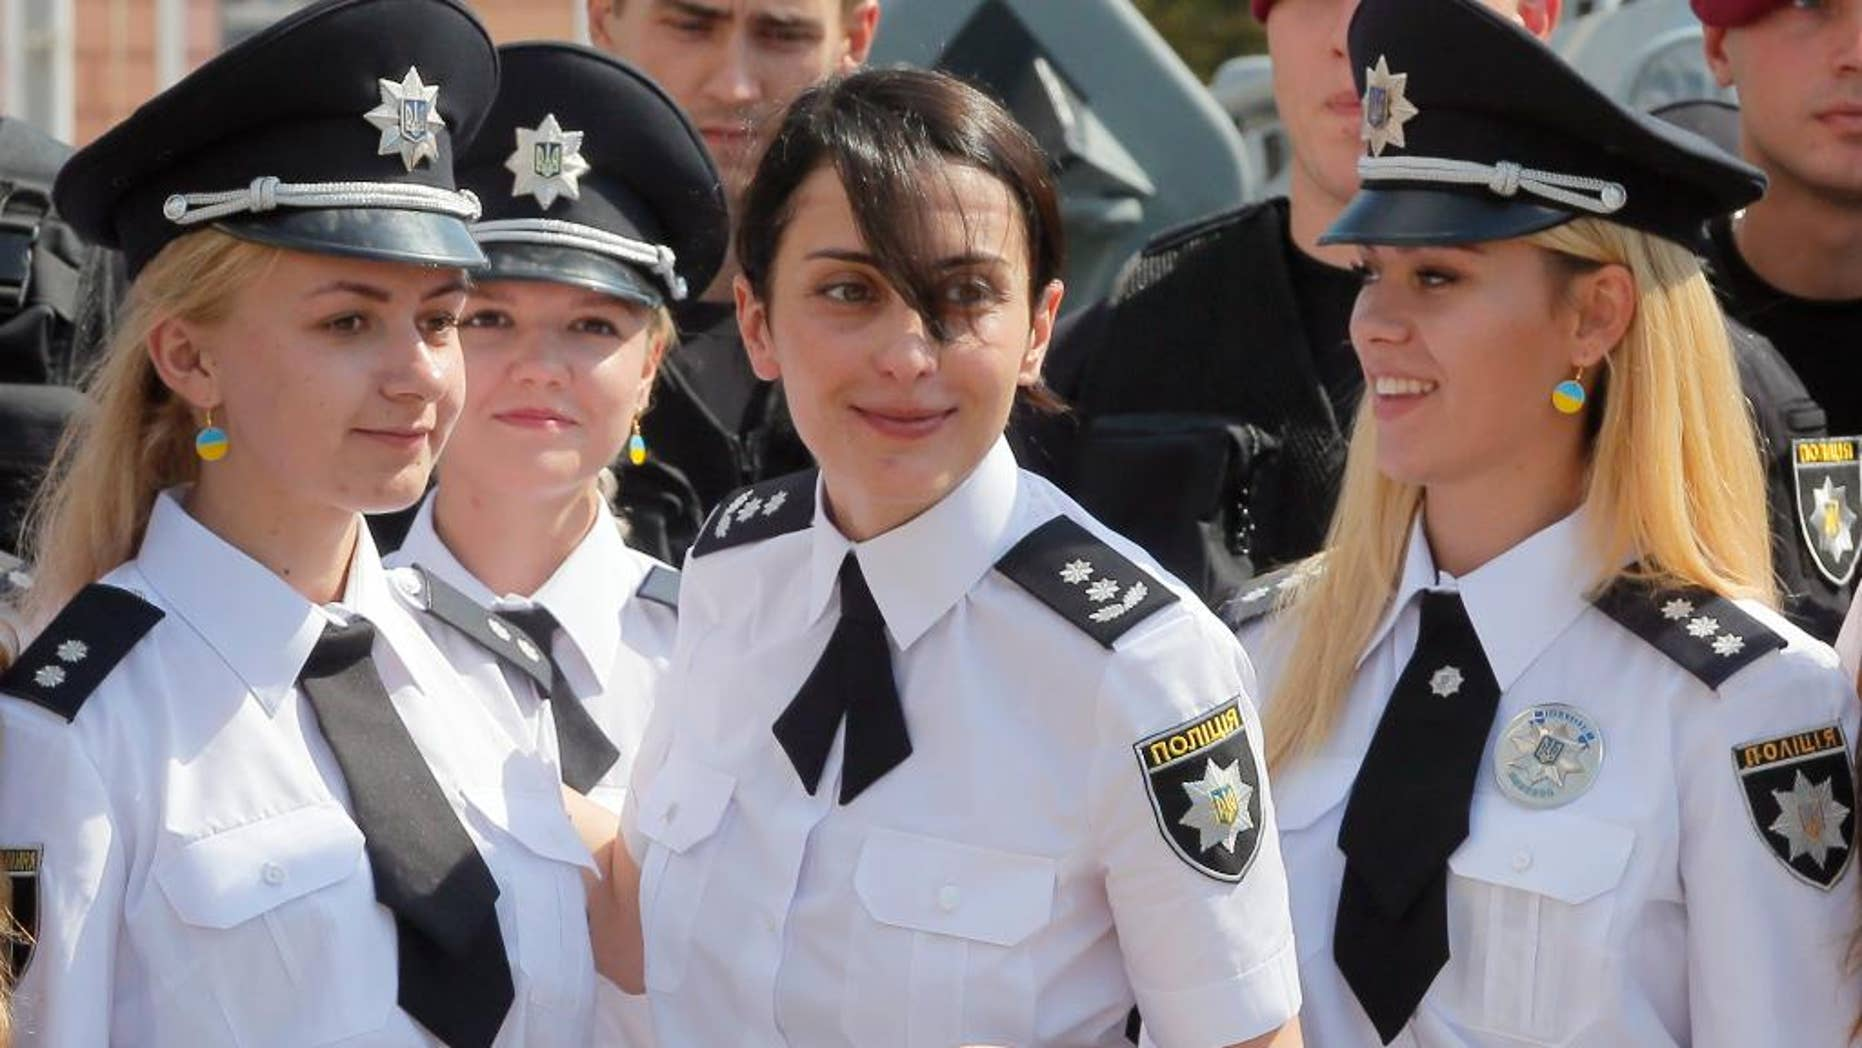 FILE In this Thursday, Aug. 4, 2016 file photo head of the National Police of Ukraine Khatiya Dekanoidze, centre, speaks with police officers during National Police Day in Kiev, Ukraine. Dekanoidze, who was driving reforms through the country's notoriously corrupt police force, has resigned Monday Nov. 14, 2016, after a year in the job, complaining of government pressure. (AP Photo/Efrem Lukatsky, File)